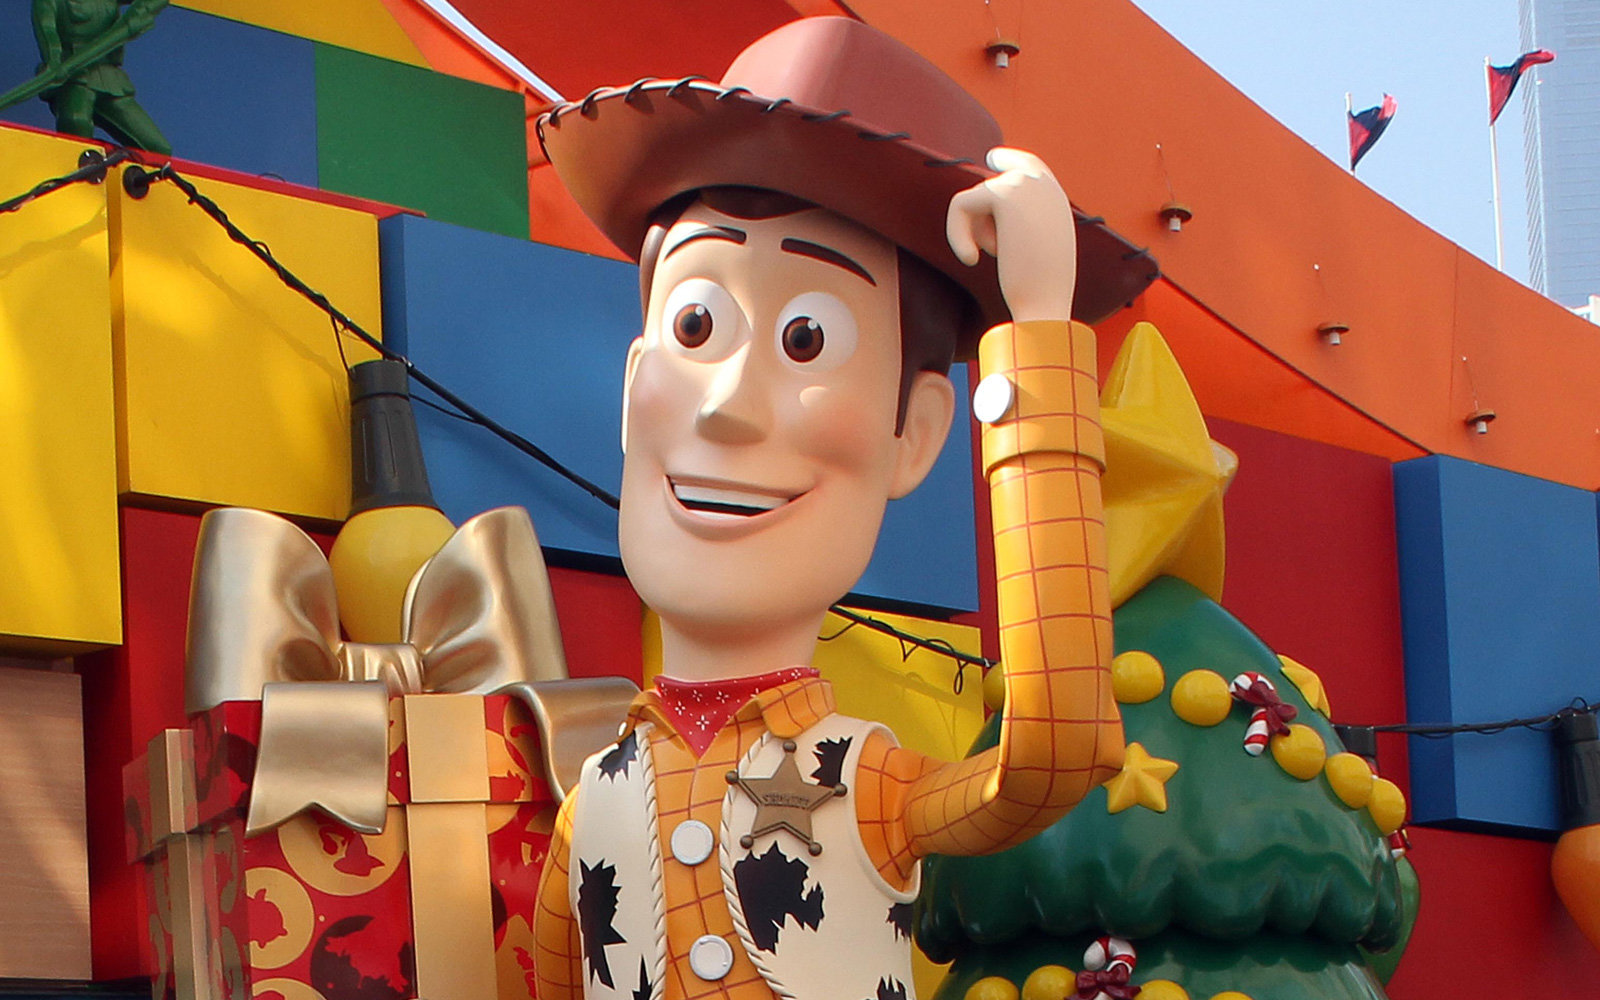 Toy Story Land Opening What To Expect When Disney World Brings Toy Story To Life Travel